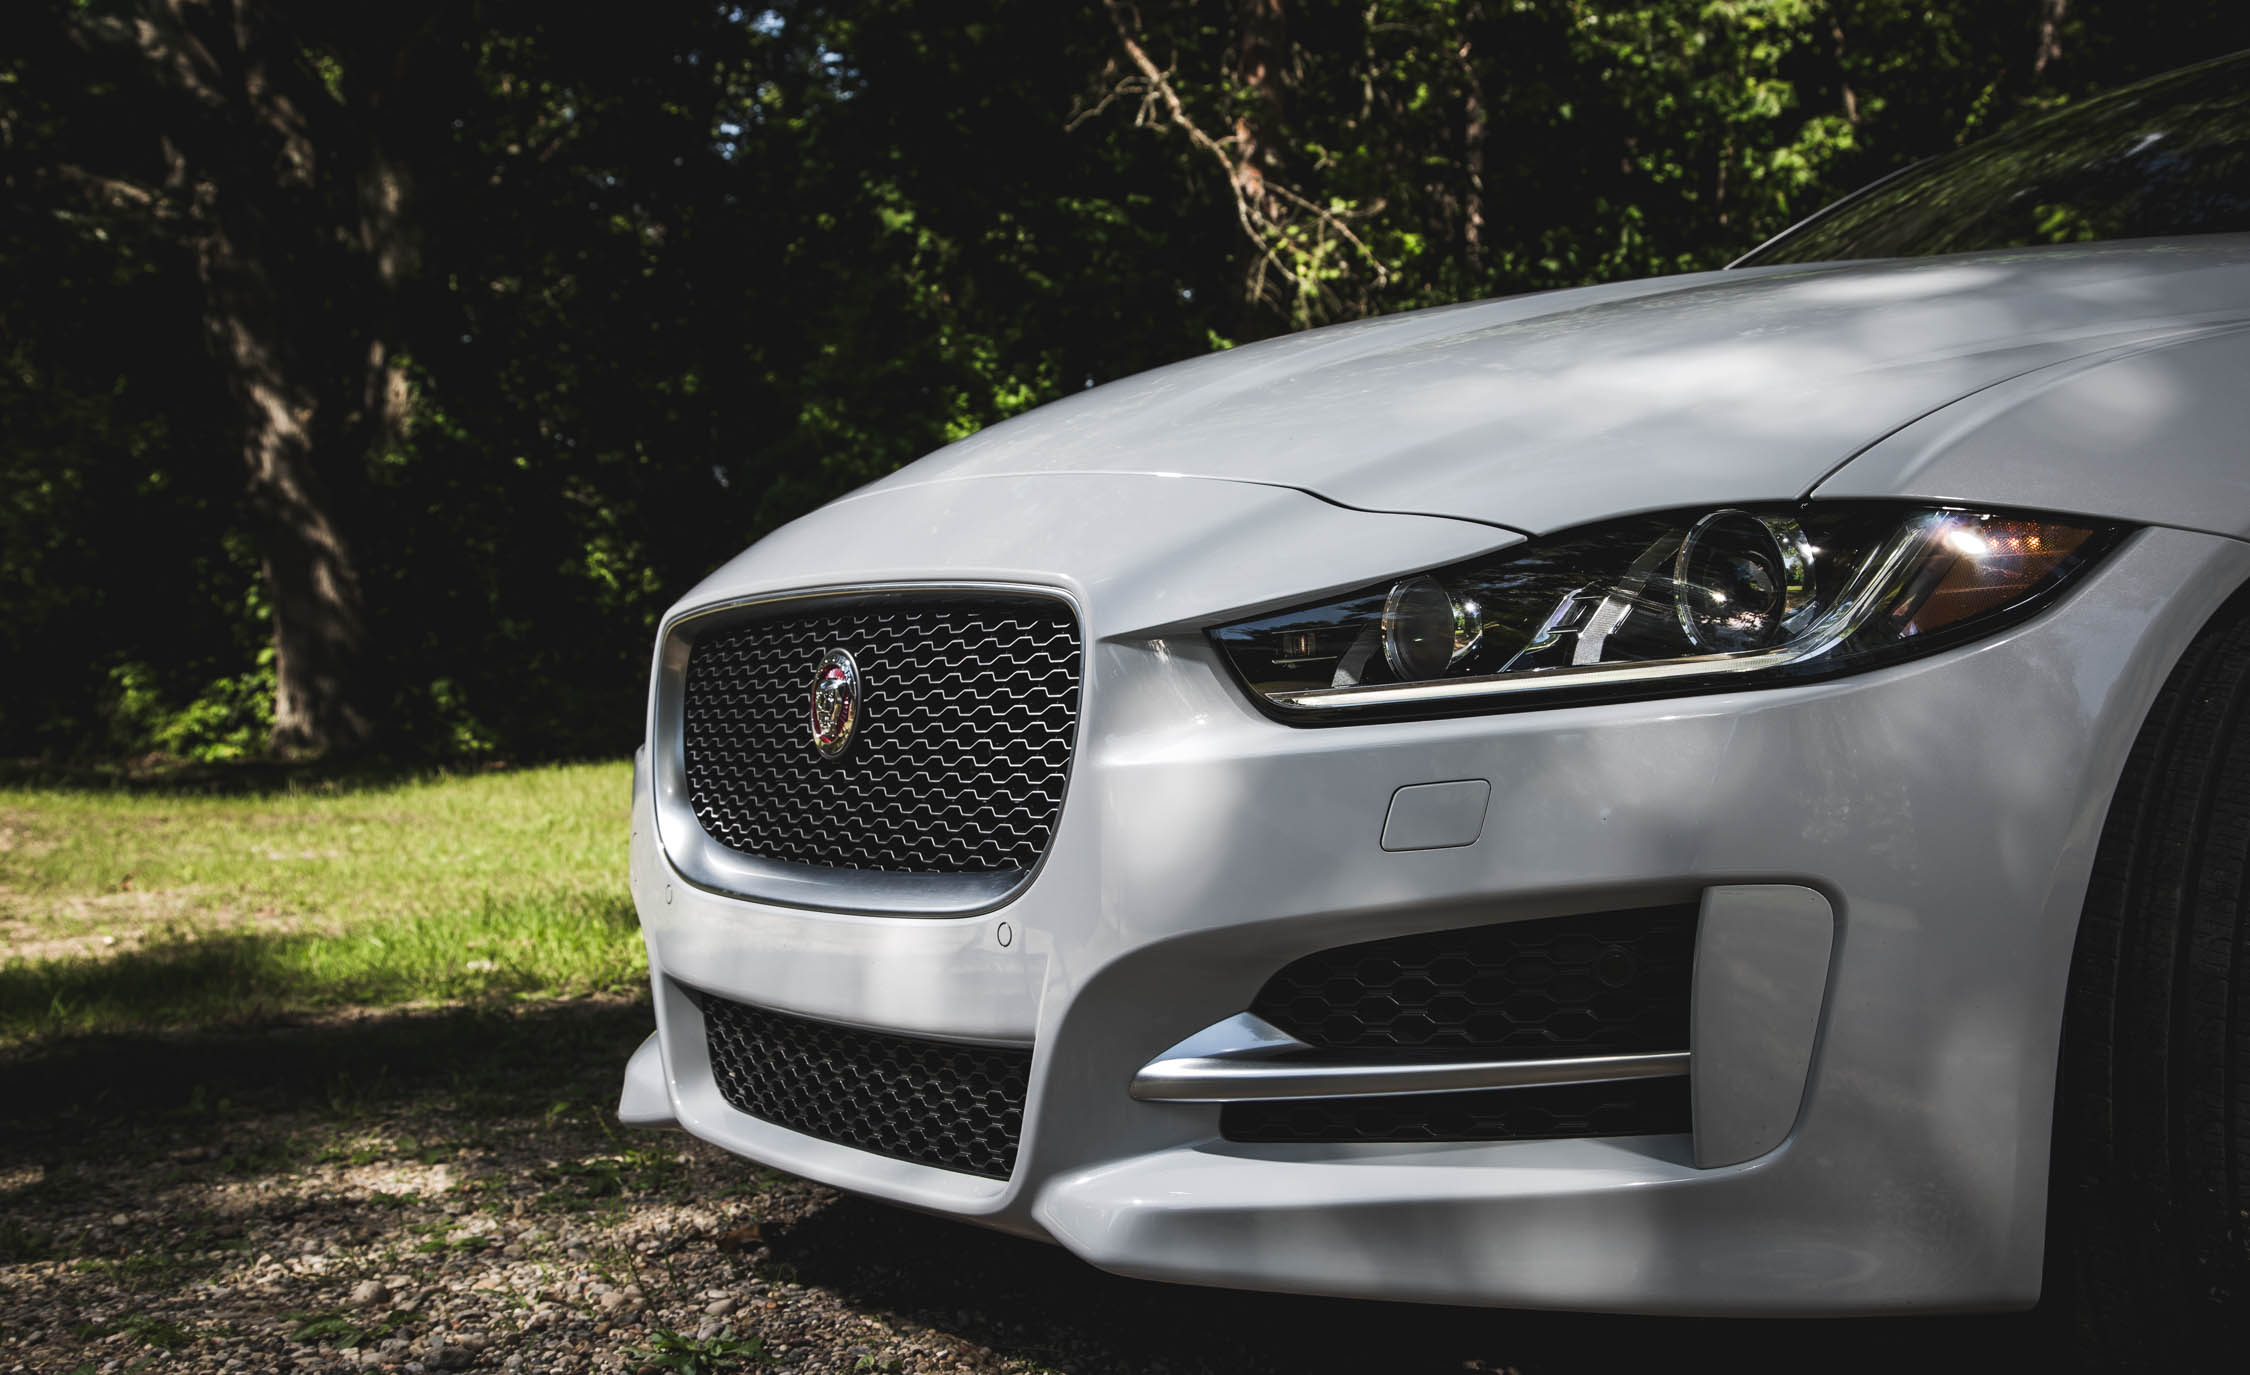 2017 Jaguar Xe White Exterior View Grille And Bumper (View 10 of 32)